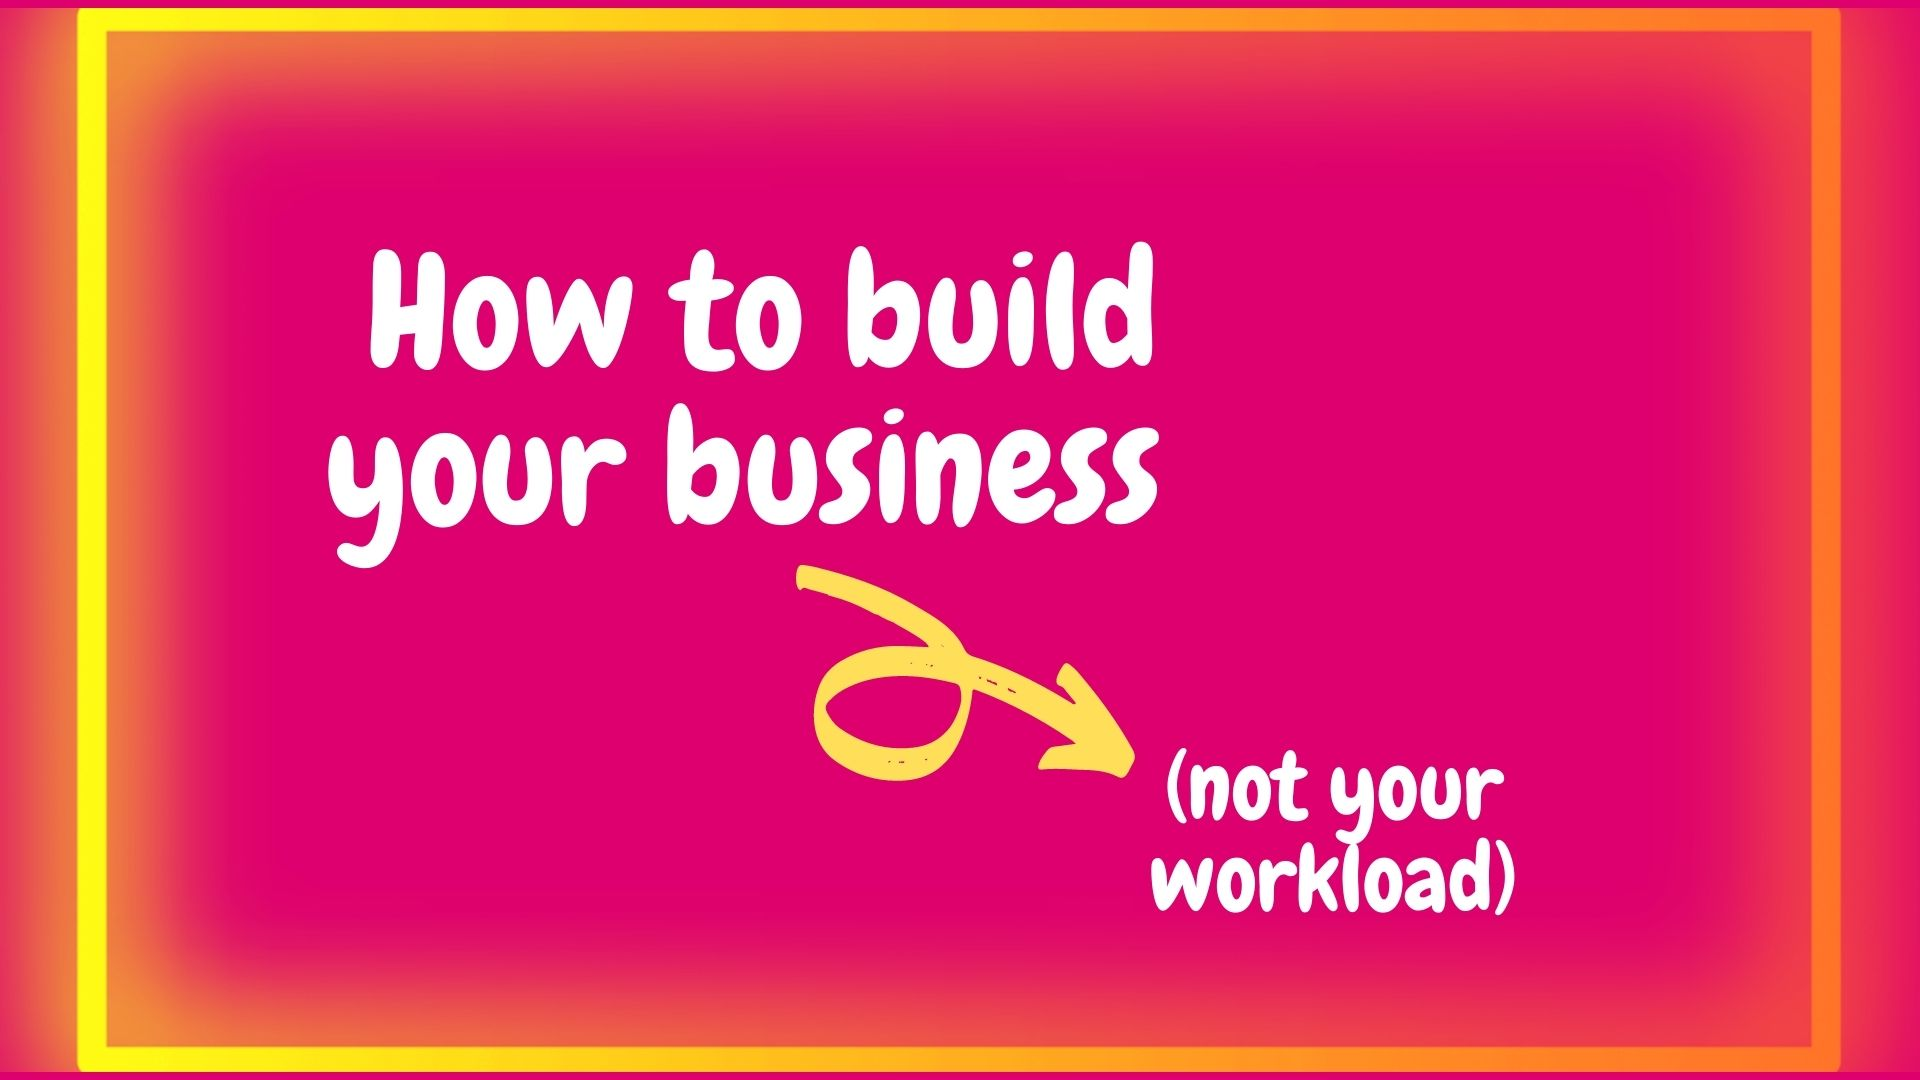 How to build your business (not your workload)